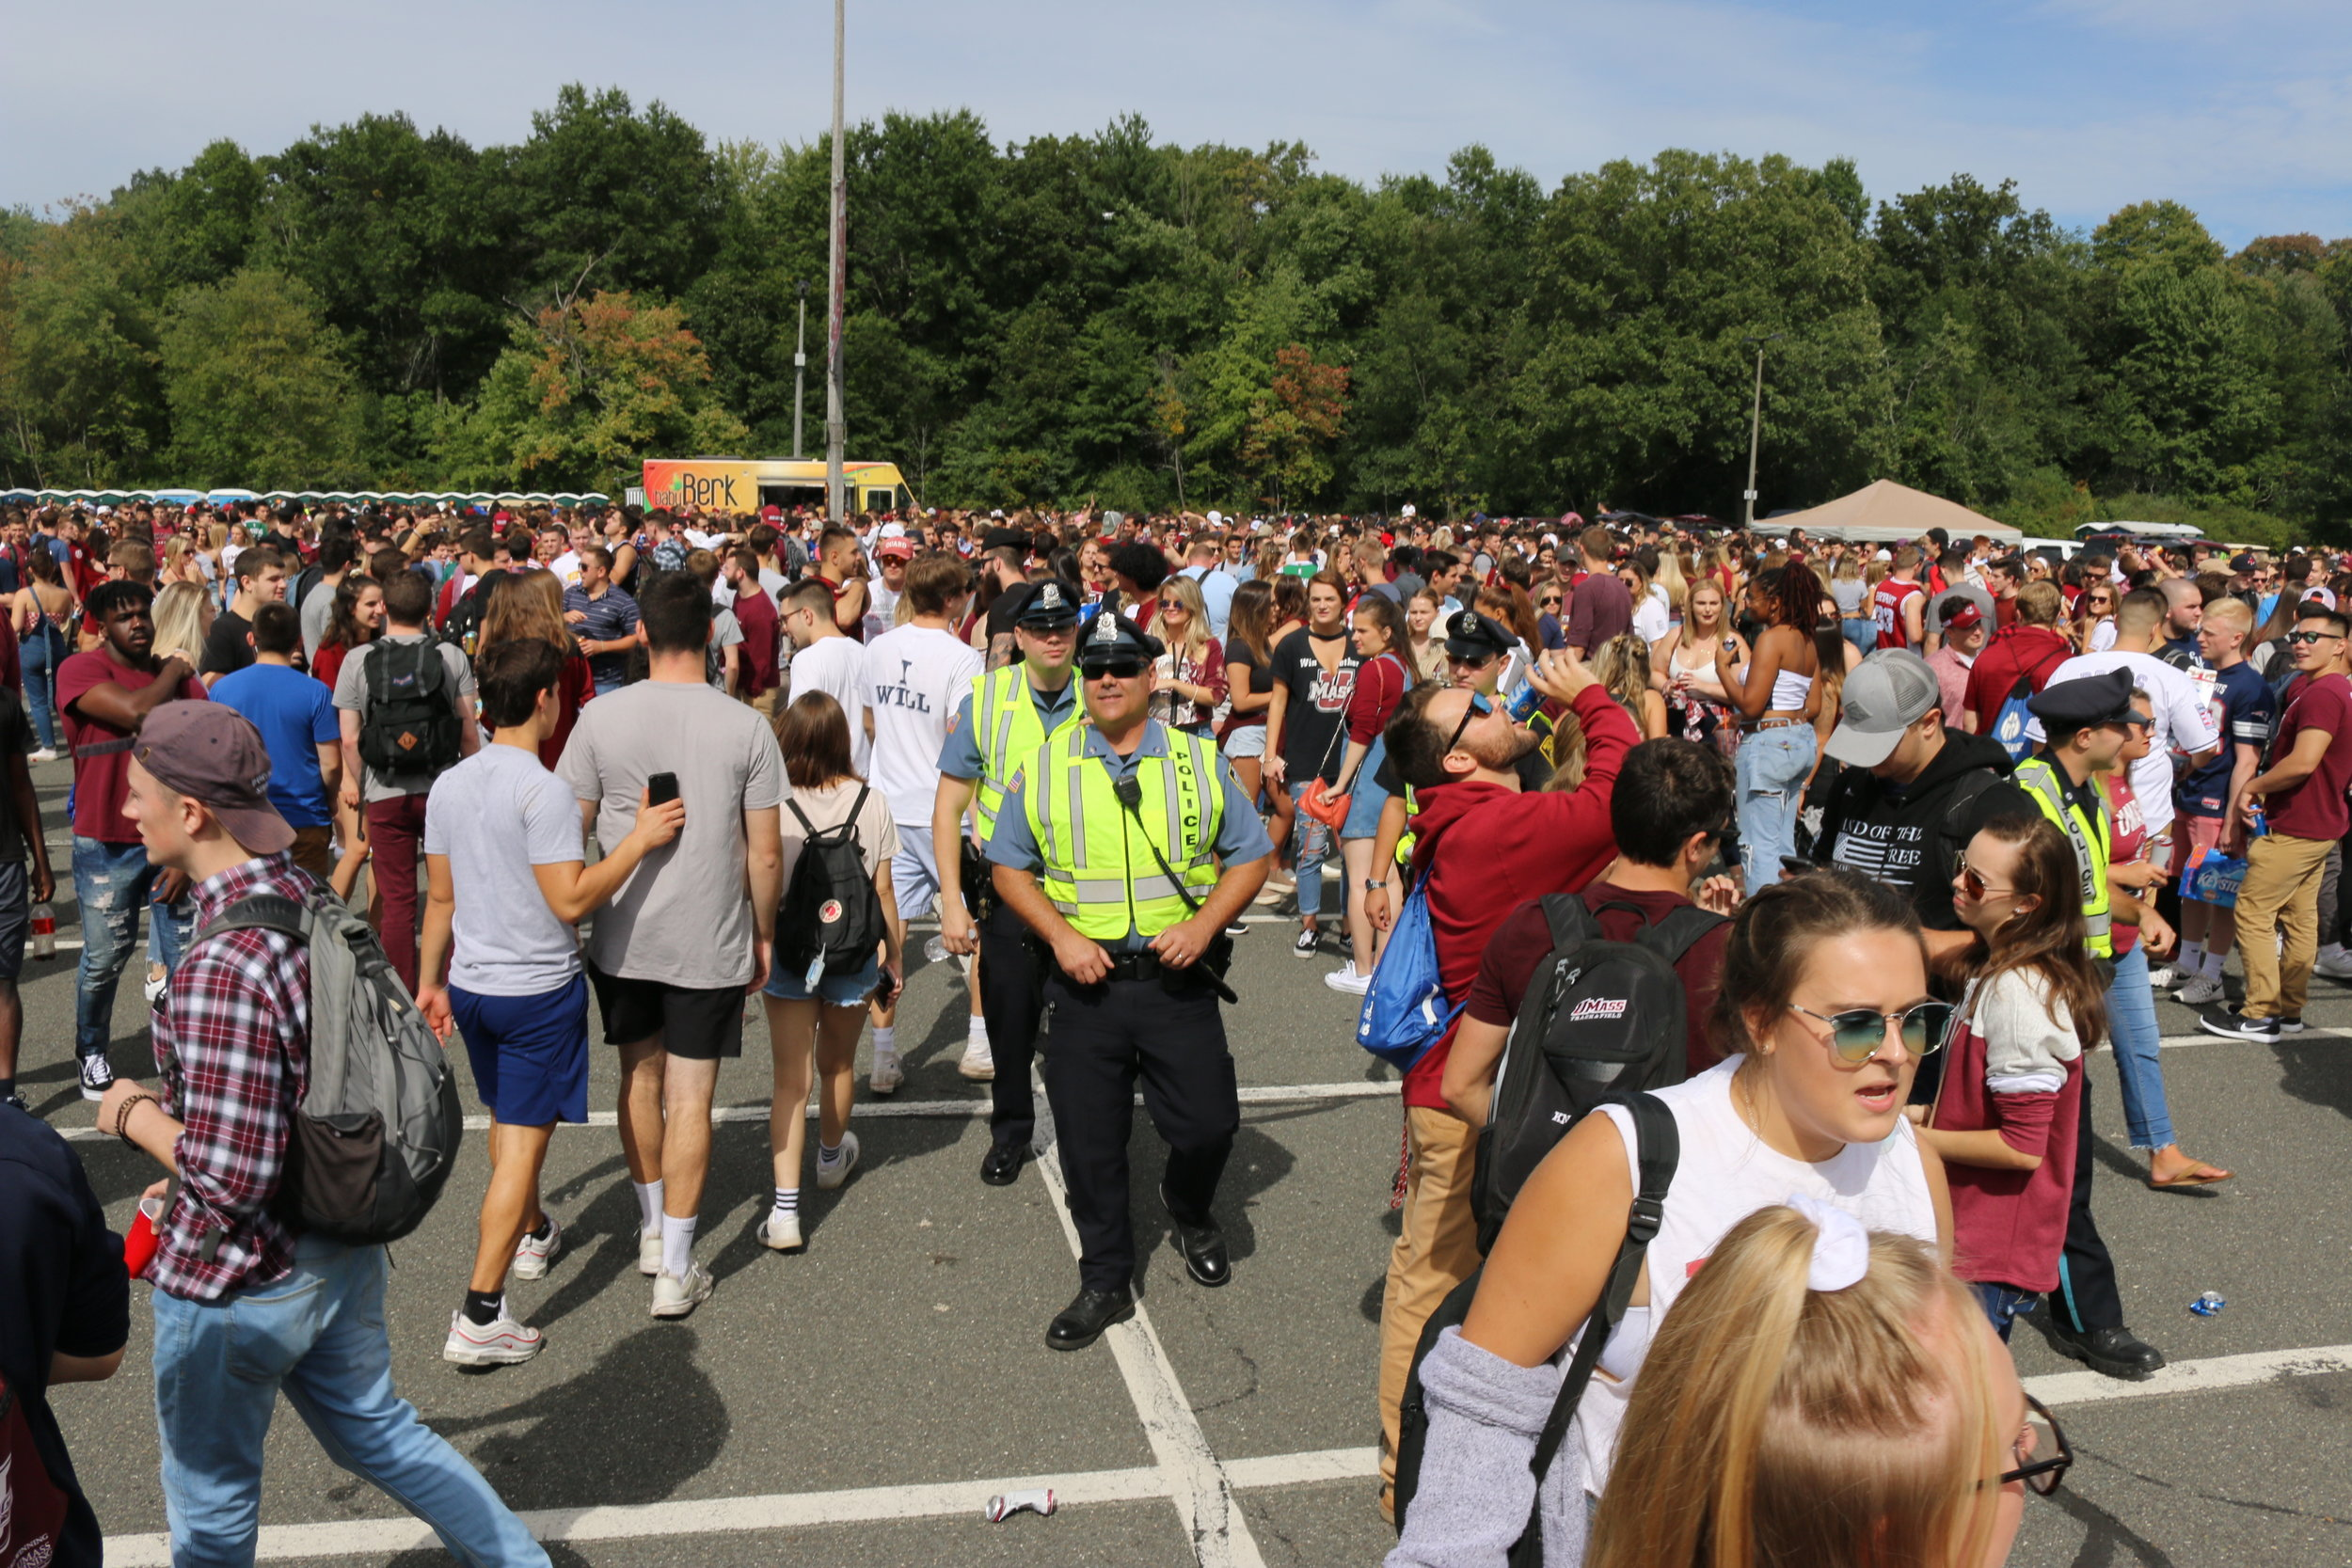 UMass Tailgate 9/22/18 - This is a gallery of the first UMass tailgate of the 2018-2019 Football season. Rowdy and loud, UMass never disappoints.Photos from this gallery were published in a slide show by The Amherst Wire. click here to view.